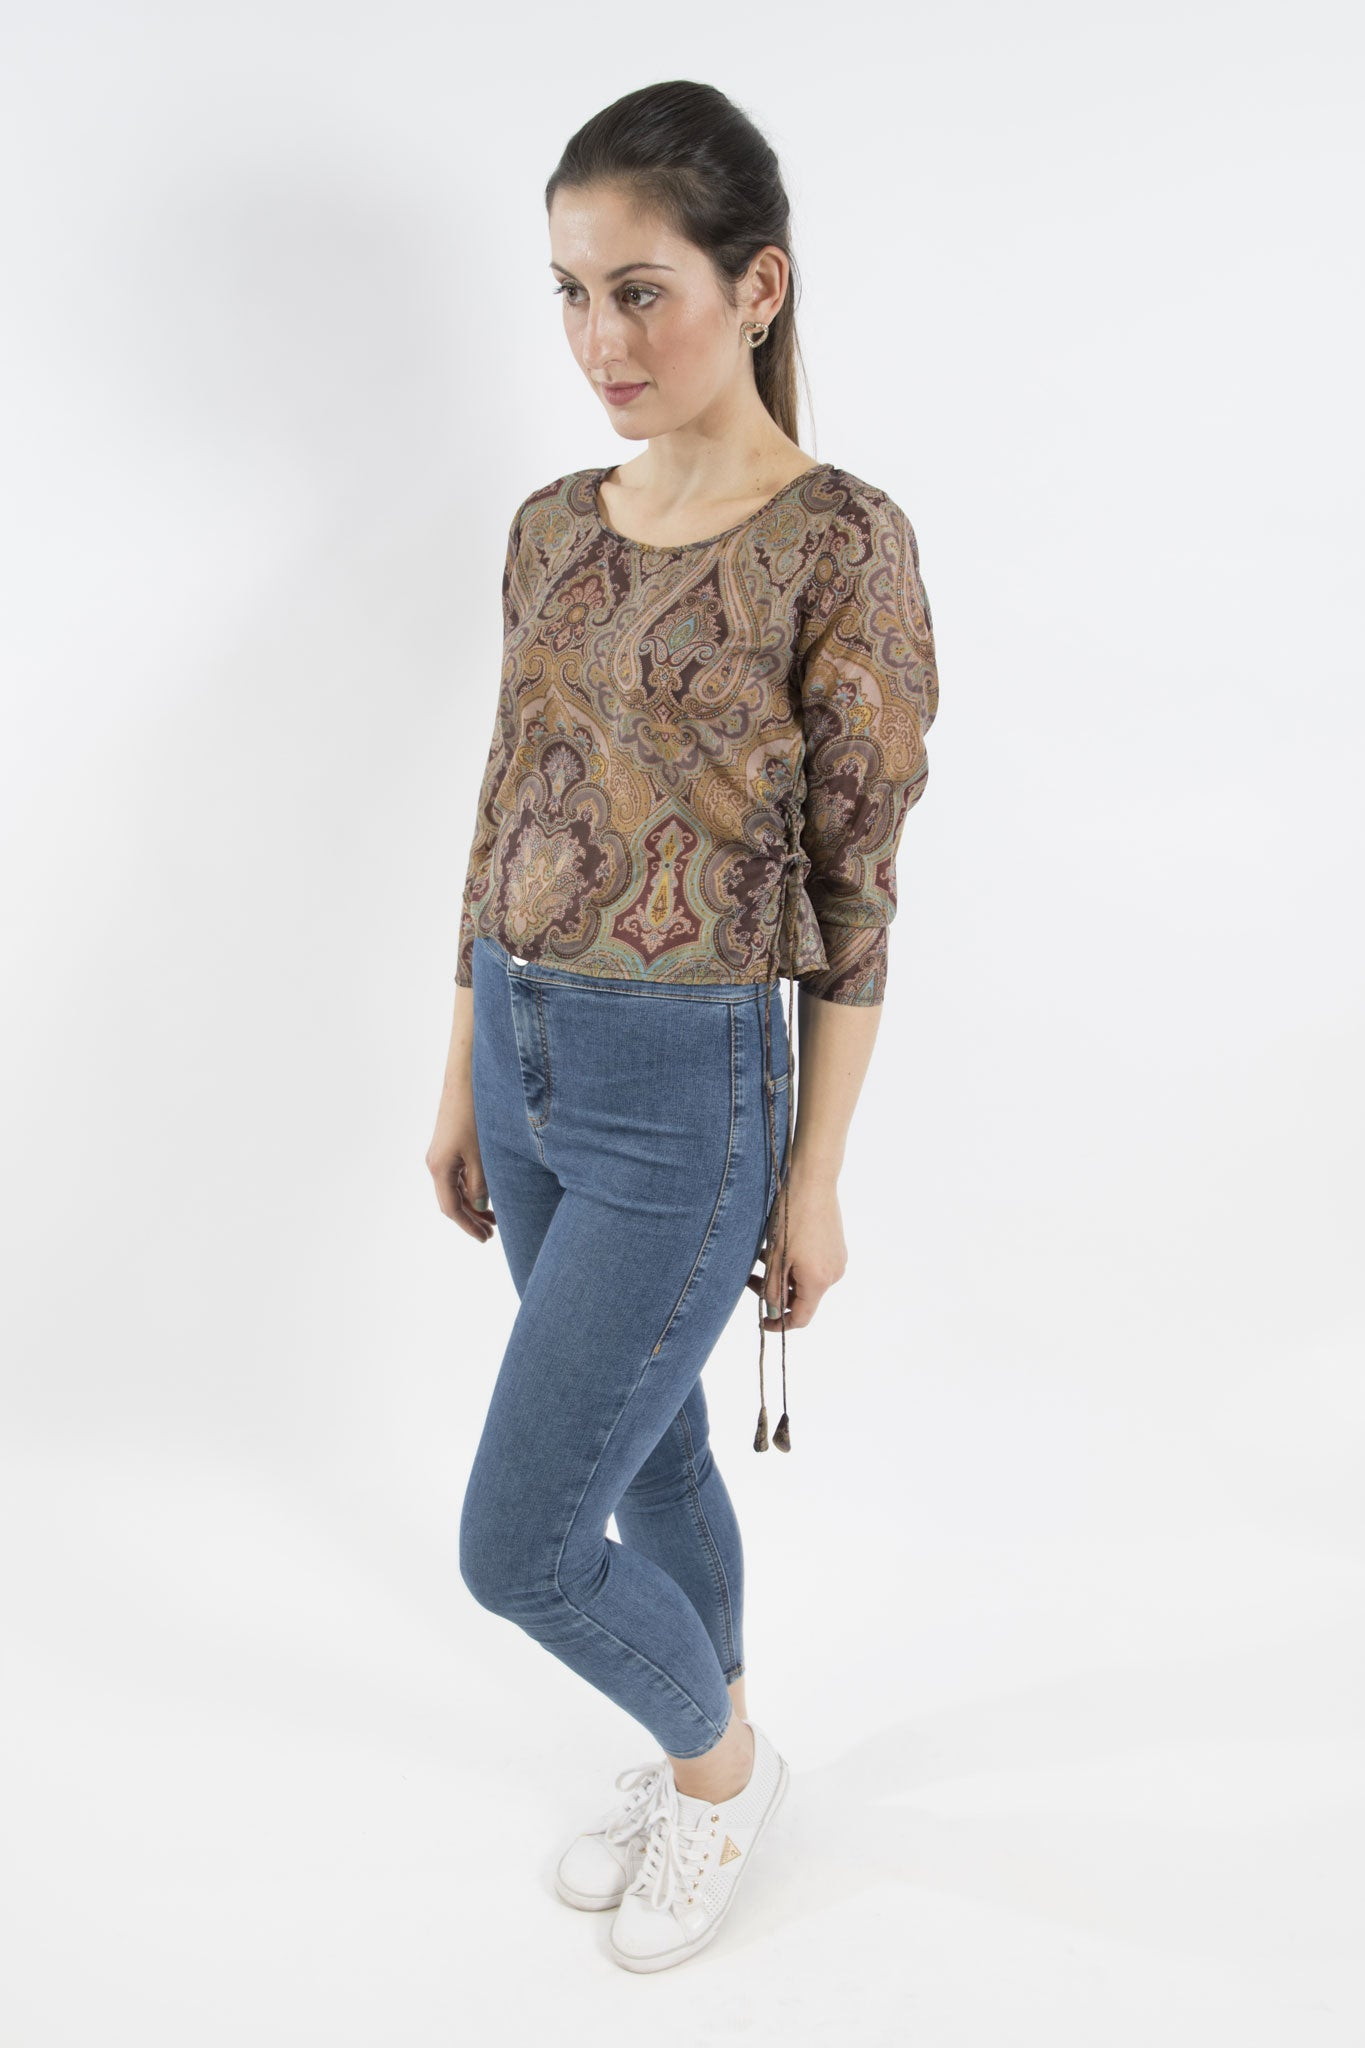 Sketch London Silk top with a paisley print and swirling colours of neutrals and turquoise highlights. Tassel ties on both sides of the crop top with sleeves to wear as fitted or loose as desired. ethical sustainable